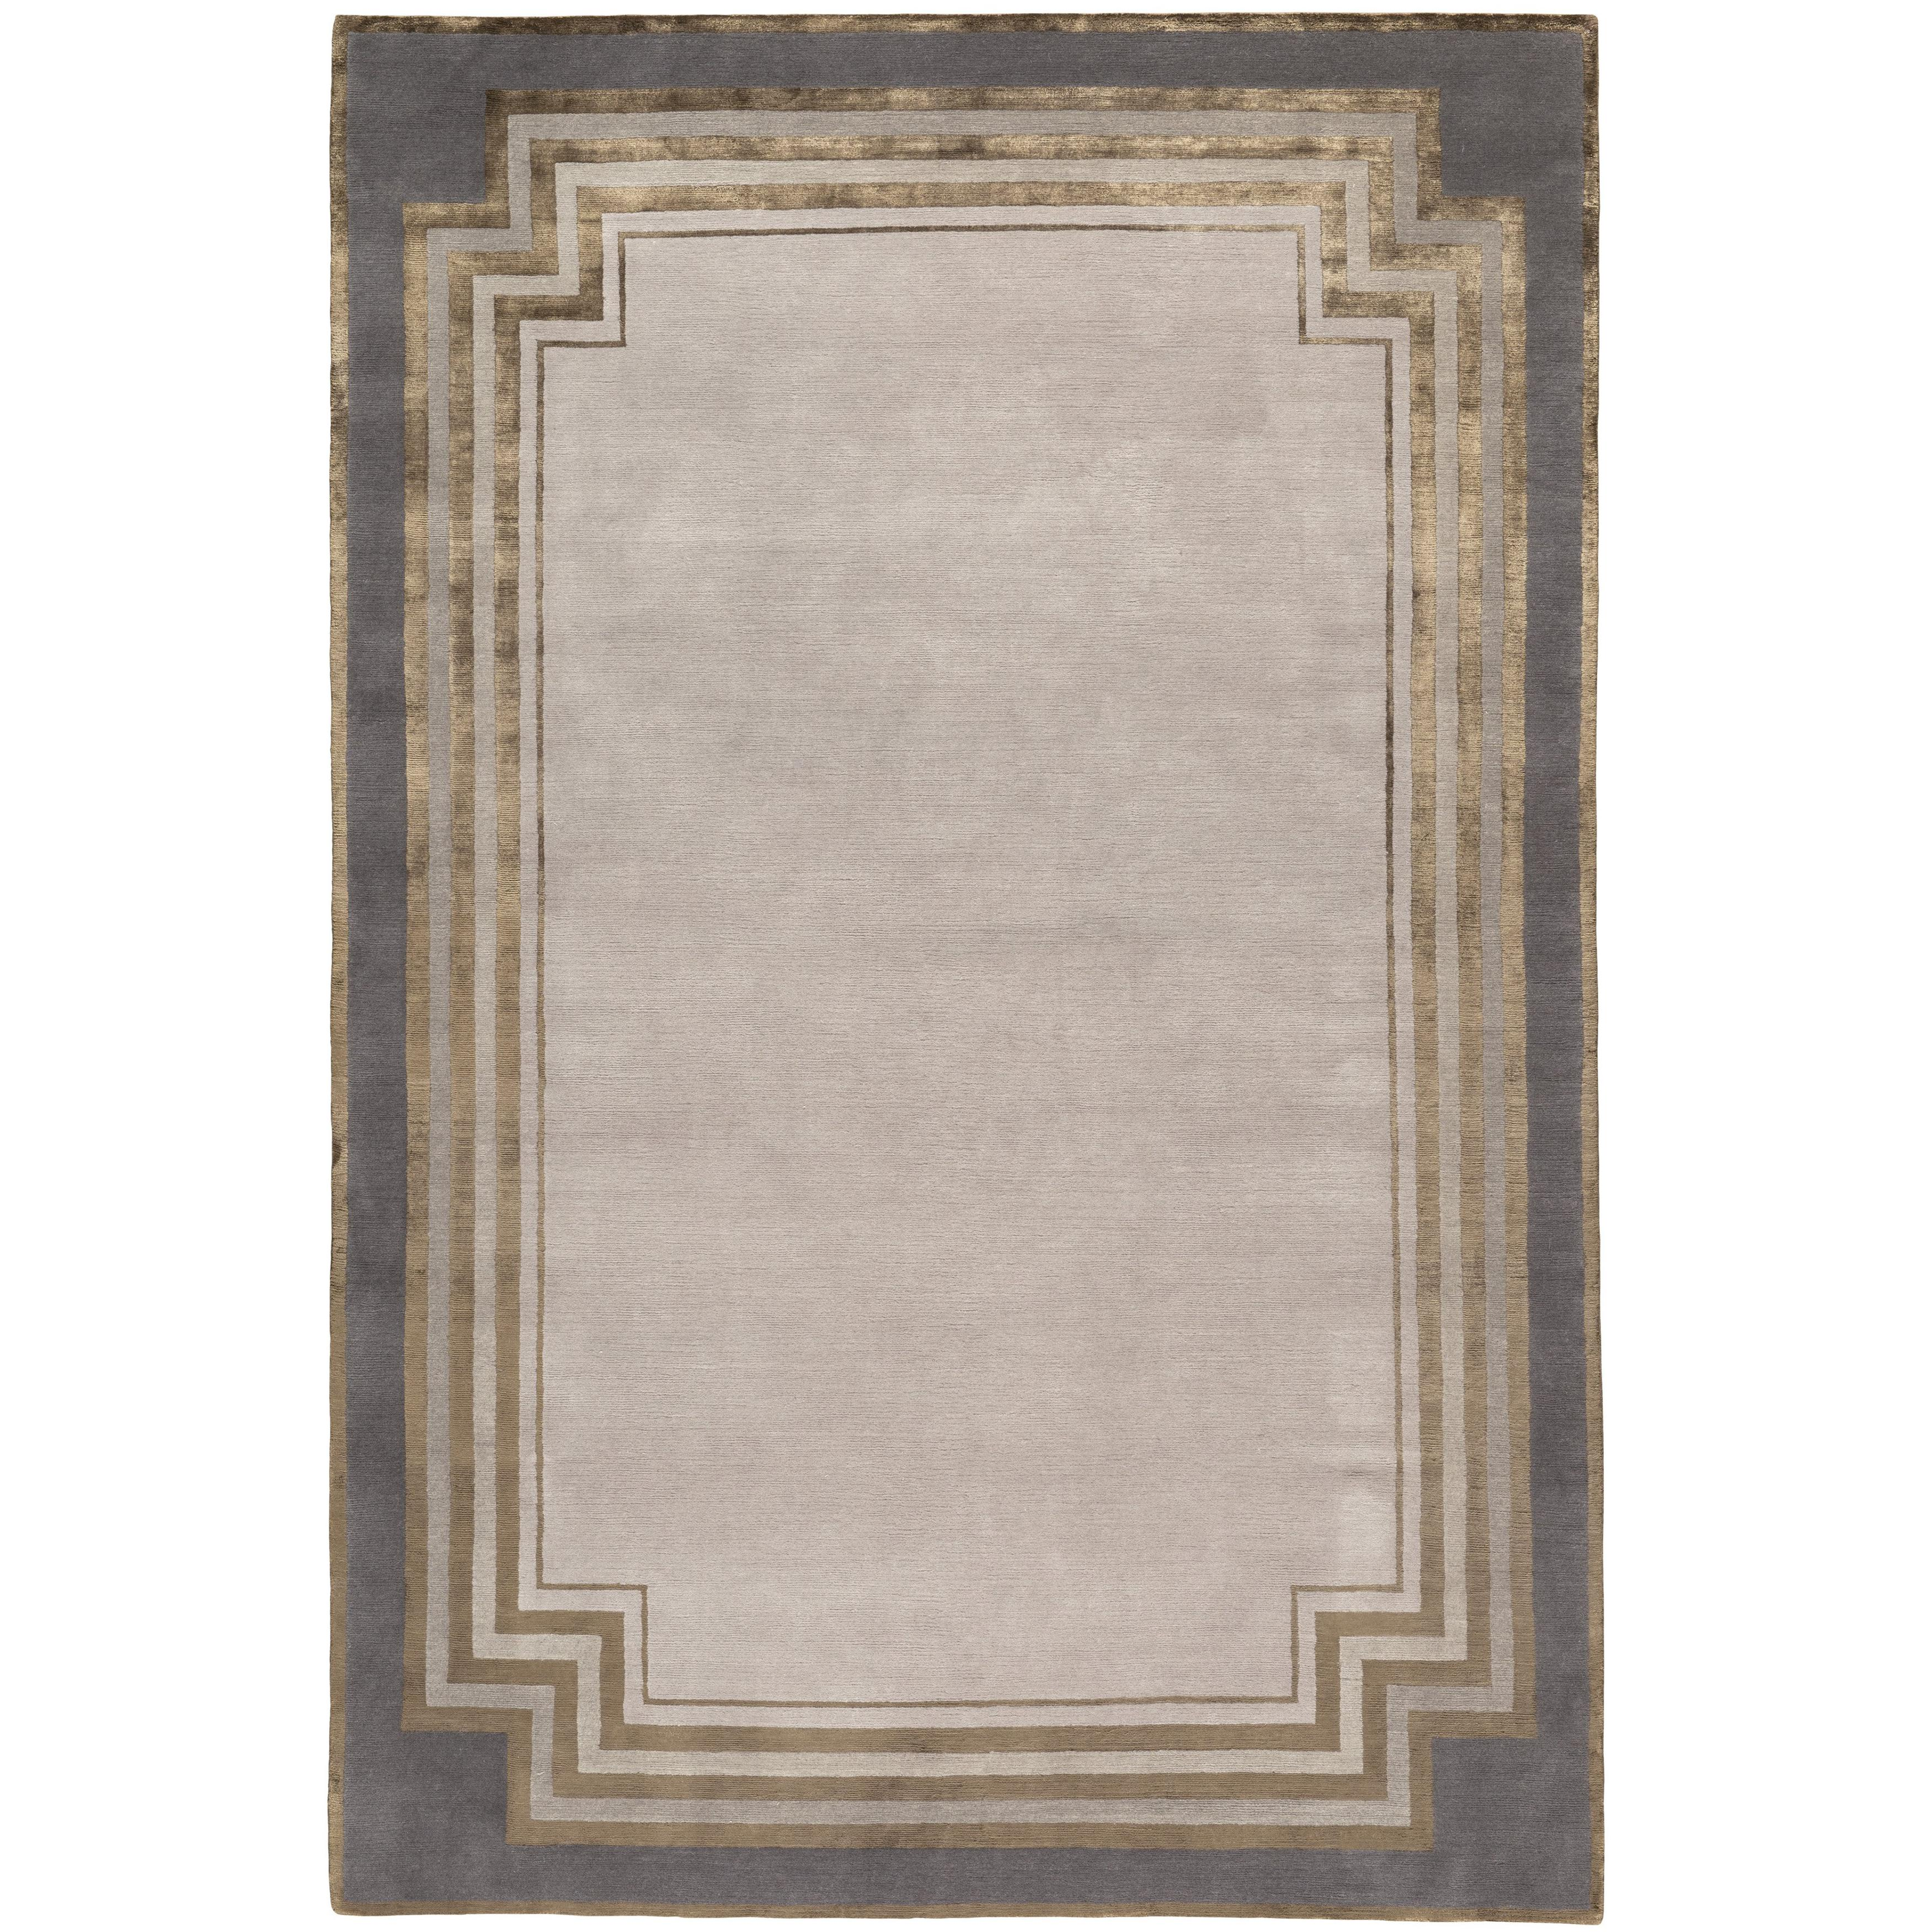 Deco Border Hand-Knotted 10x8 Rug in Wool and Silk by Tim Gosling